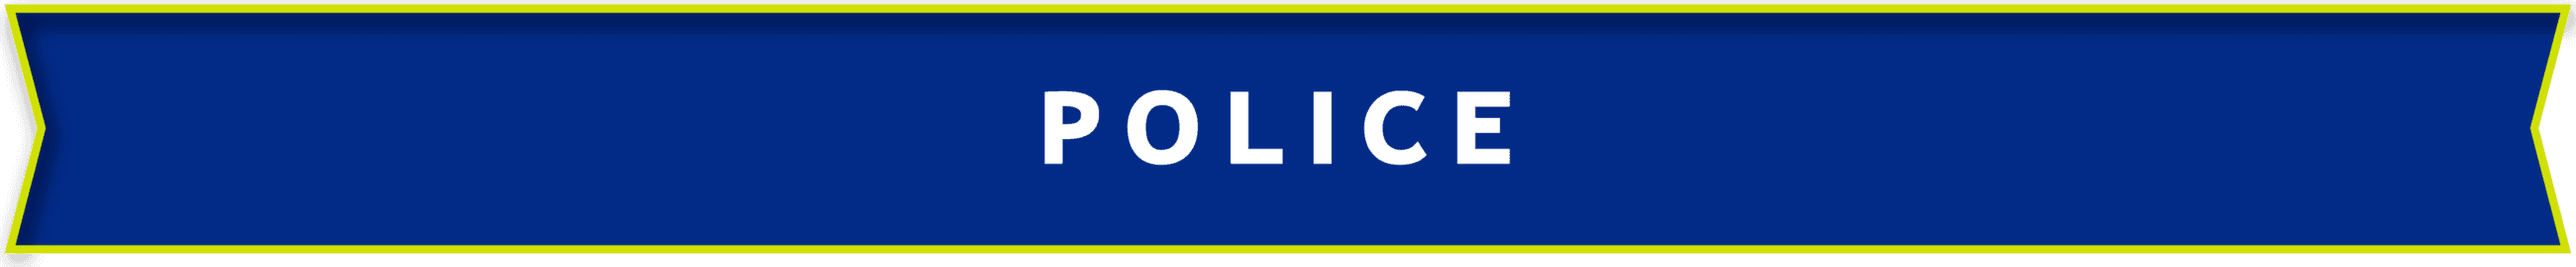 Department Header images_Police